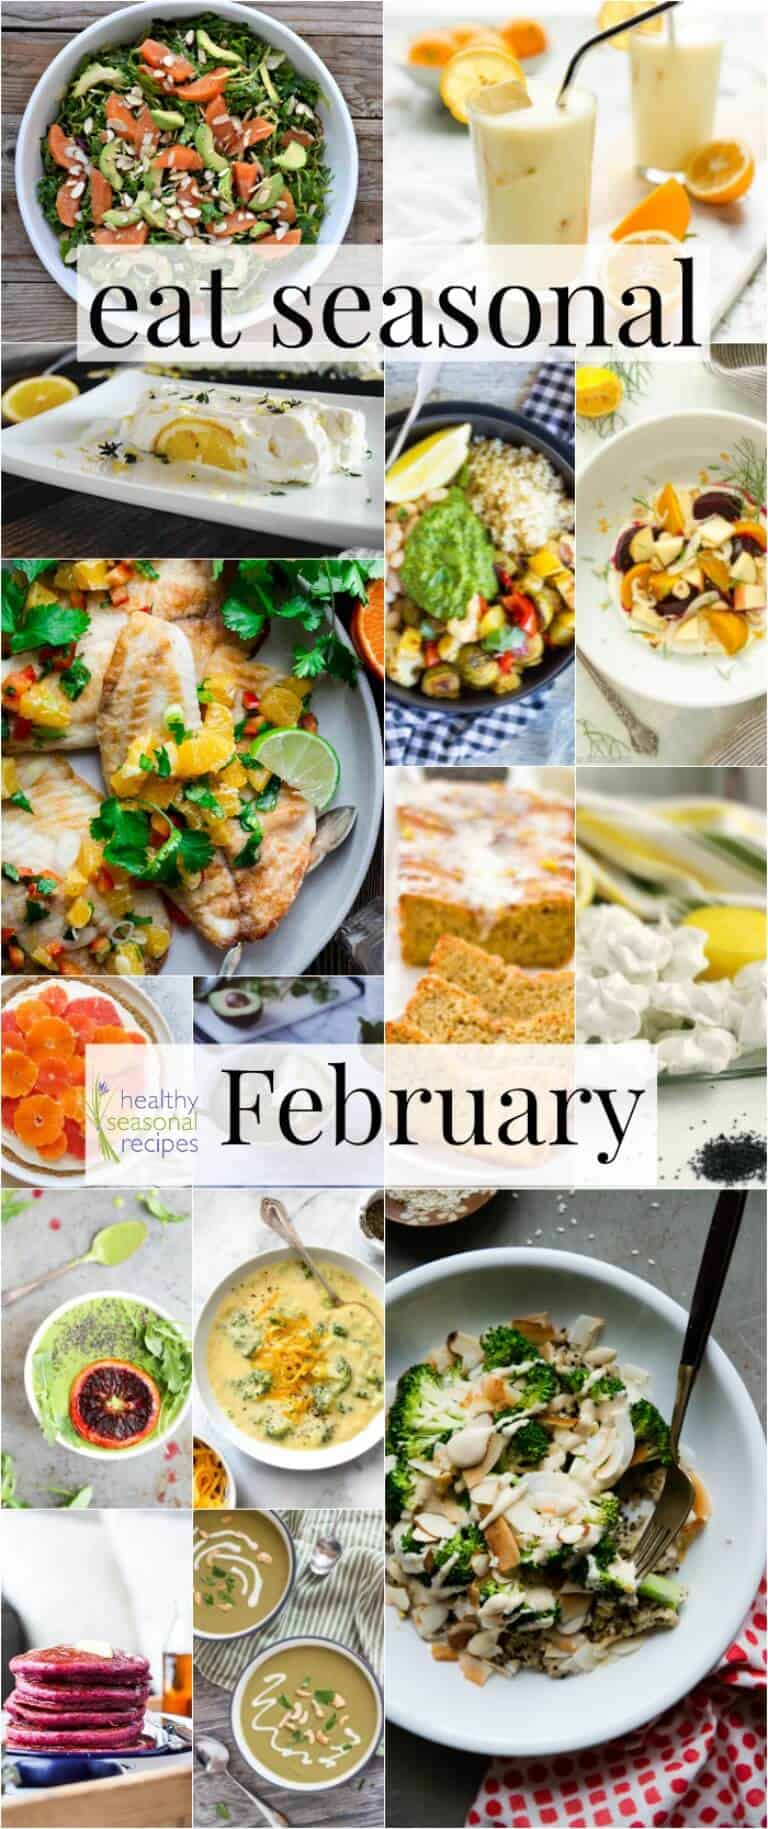 Recipes for eating in season for February | #EatSeasonal | Healthy Seasonal Recipes by Katie Webster